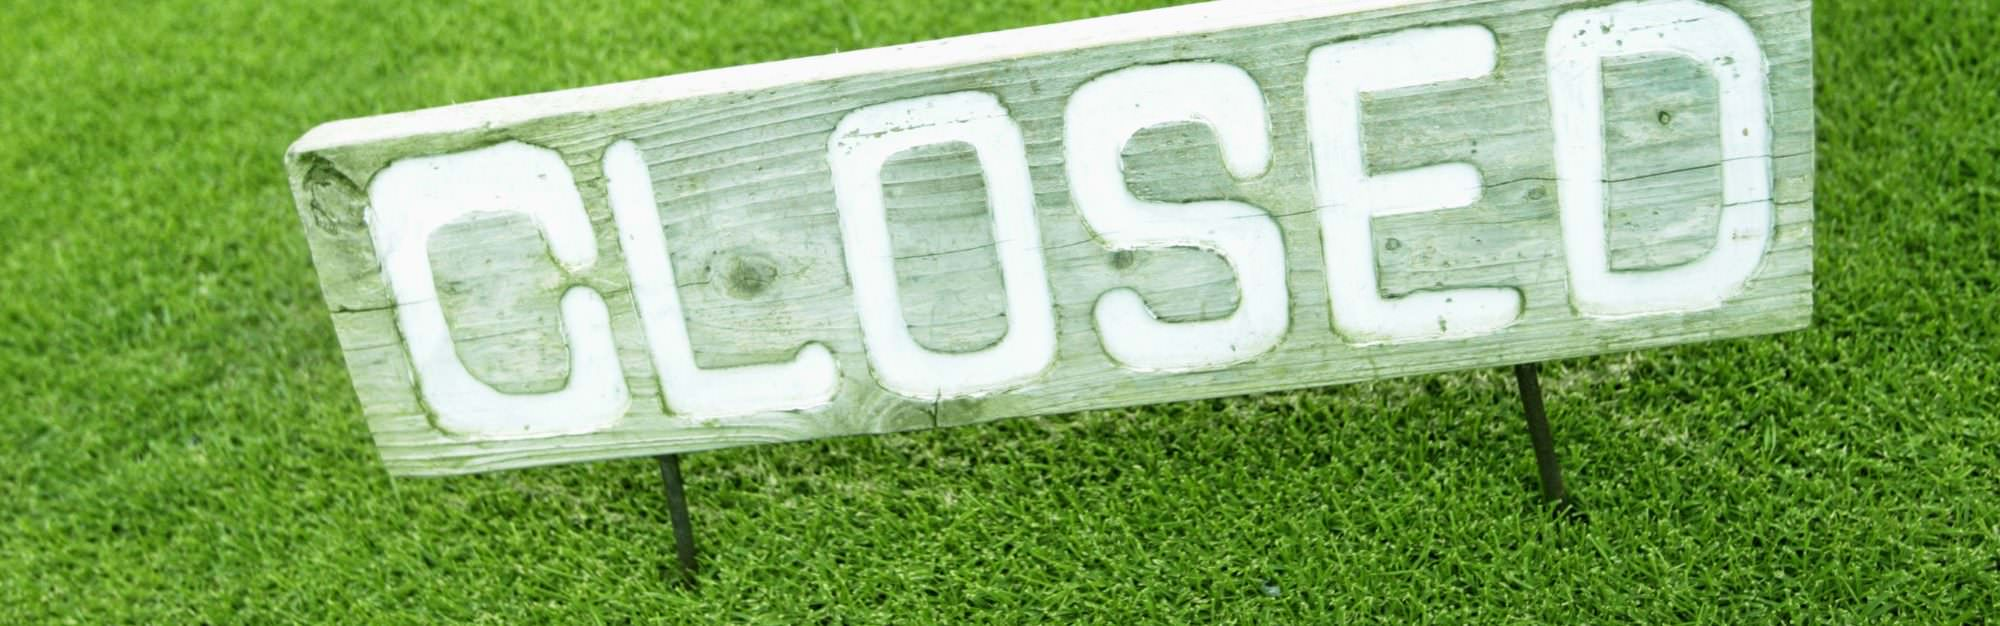 Will your club close during the coronavirus outbreak?